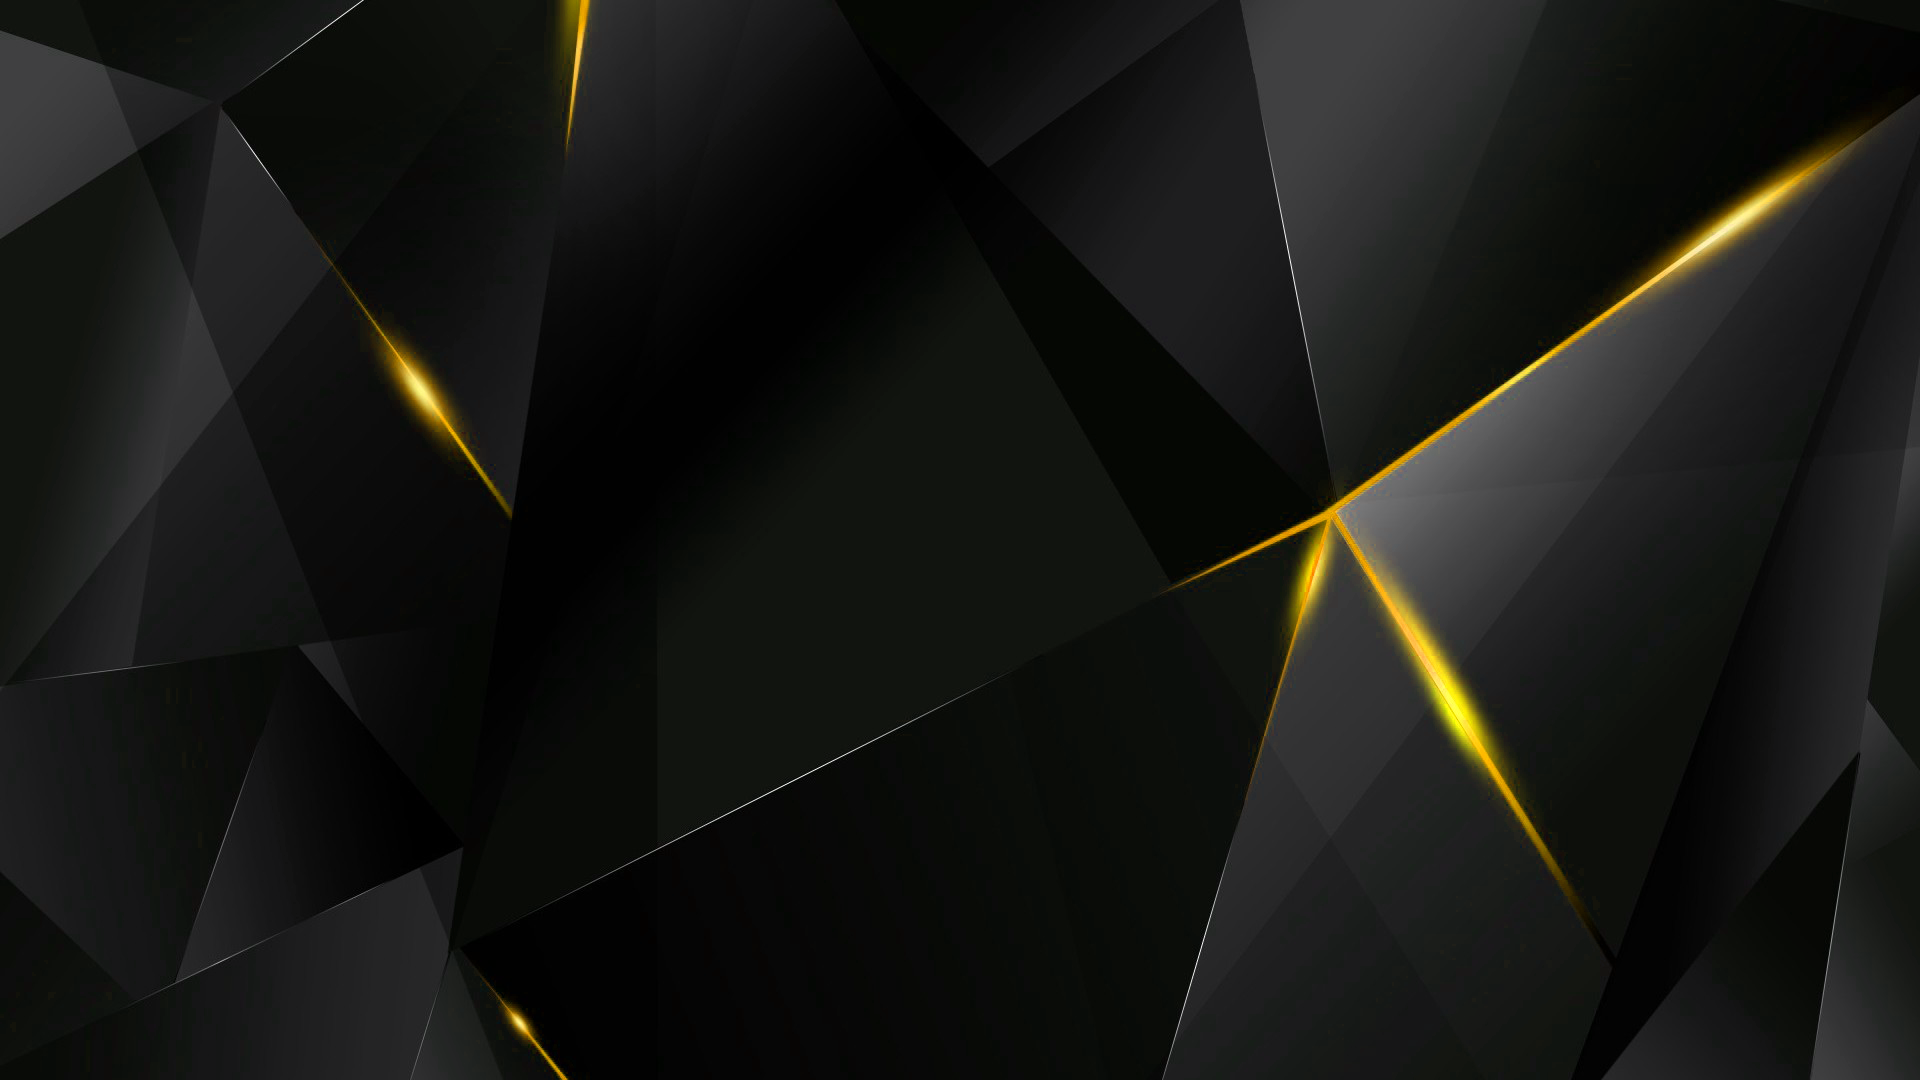 wallpapers yellow abstract polygons black bg by